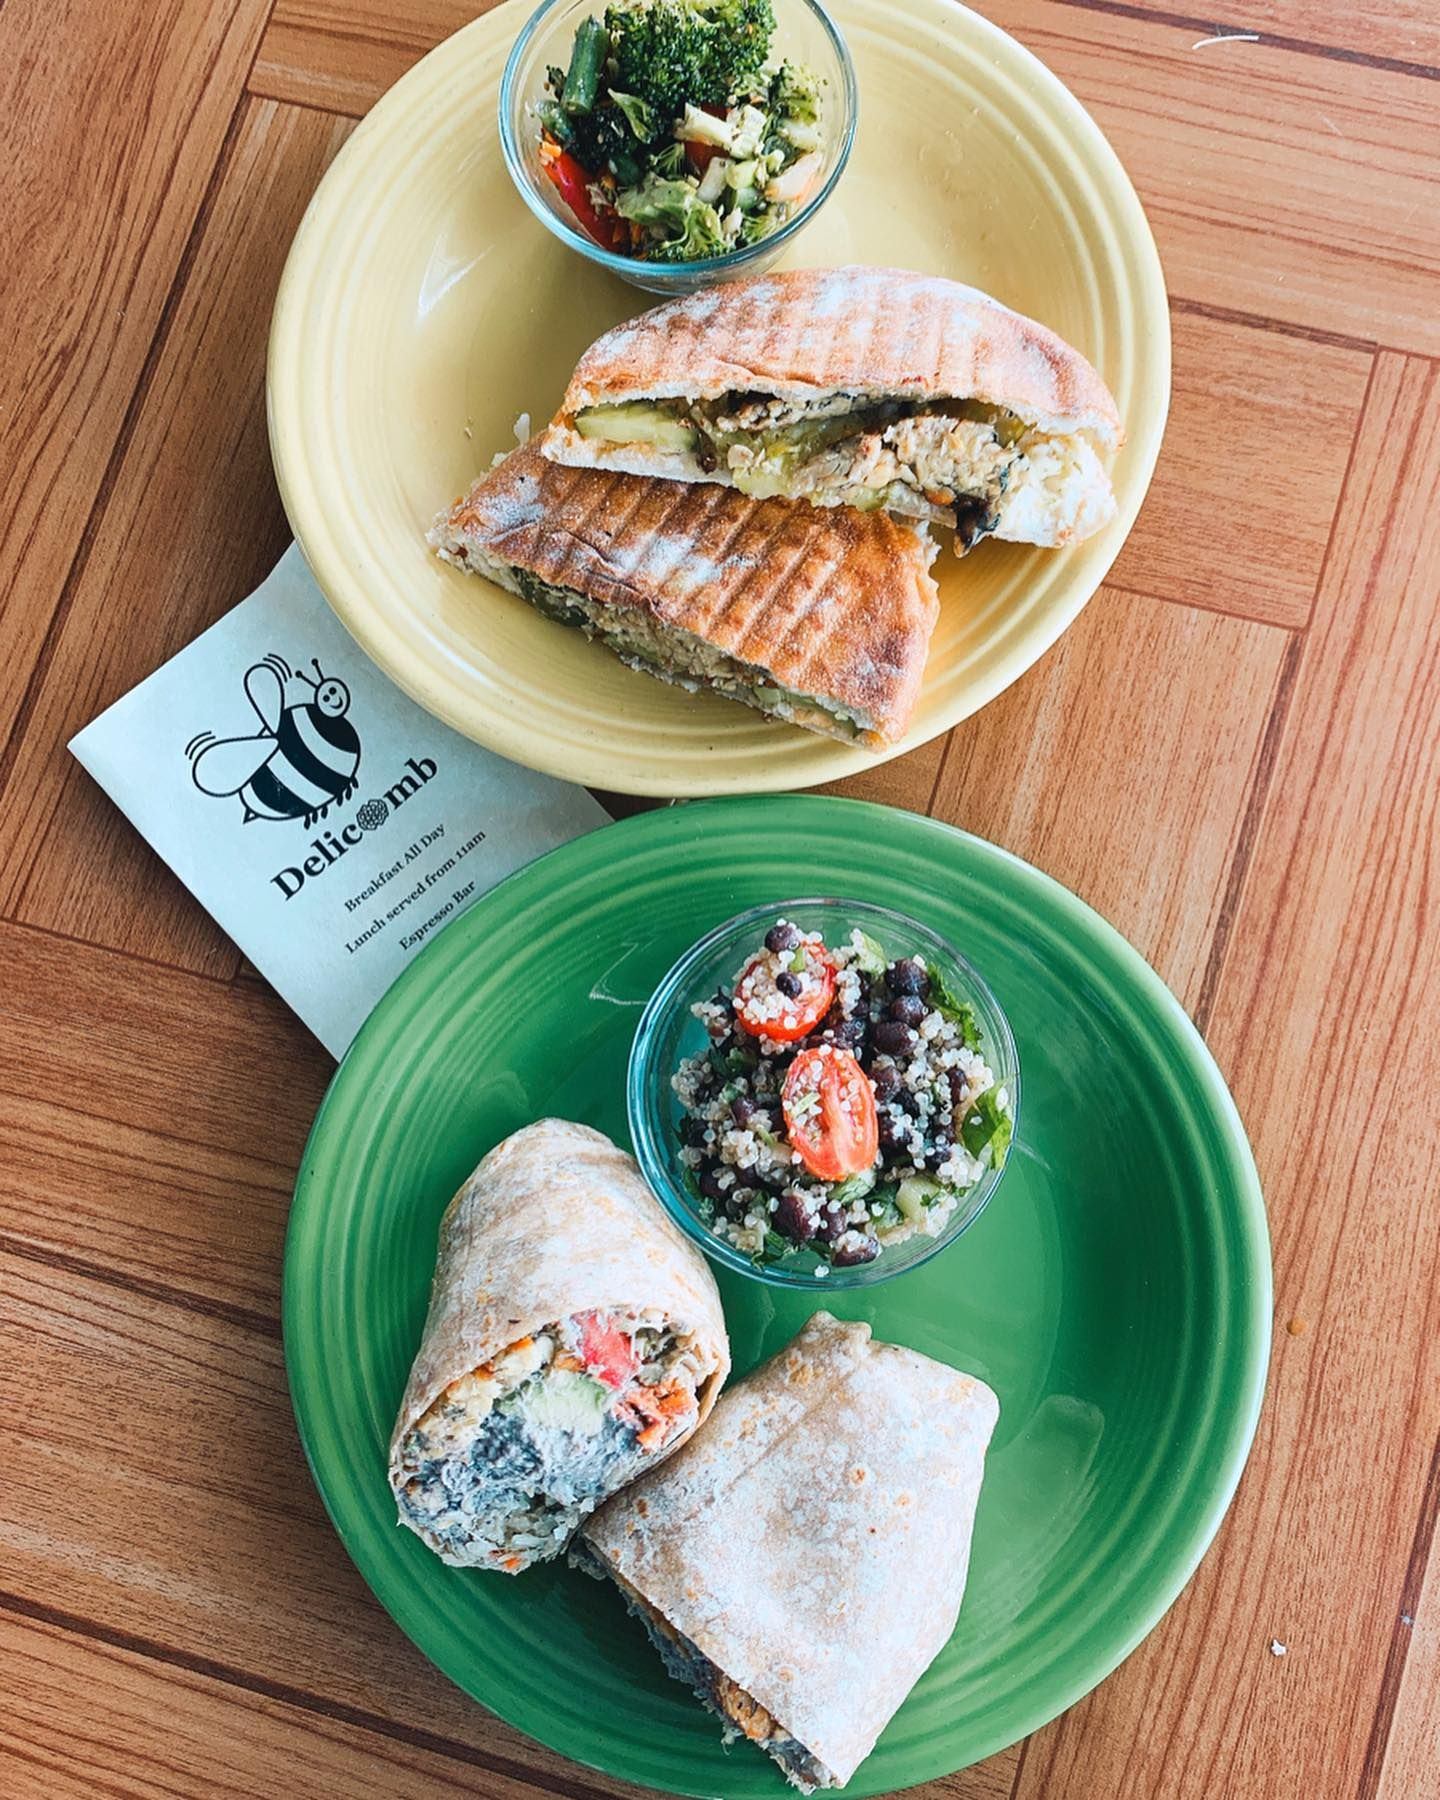 If You Re In Jaxbeach You Have To Check Out Delicomb Lots Of Vegan Options And Even Better They Make Multiple Vari In 2020 Vegan Wraps Vegan Recipes Vegan Options